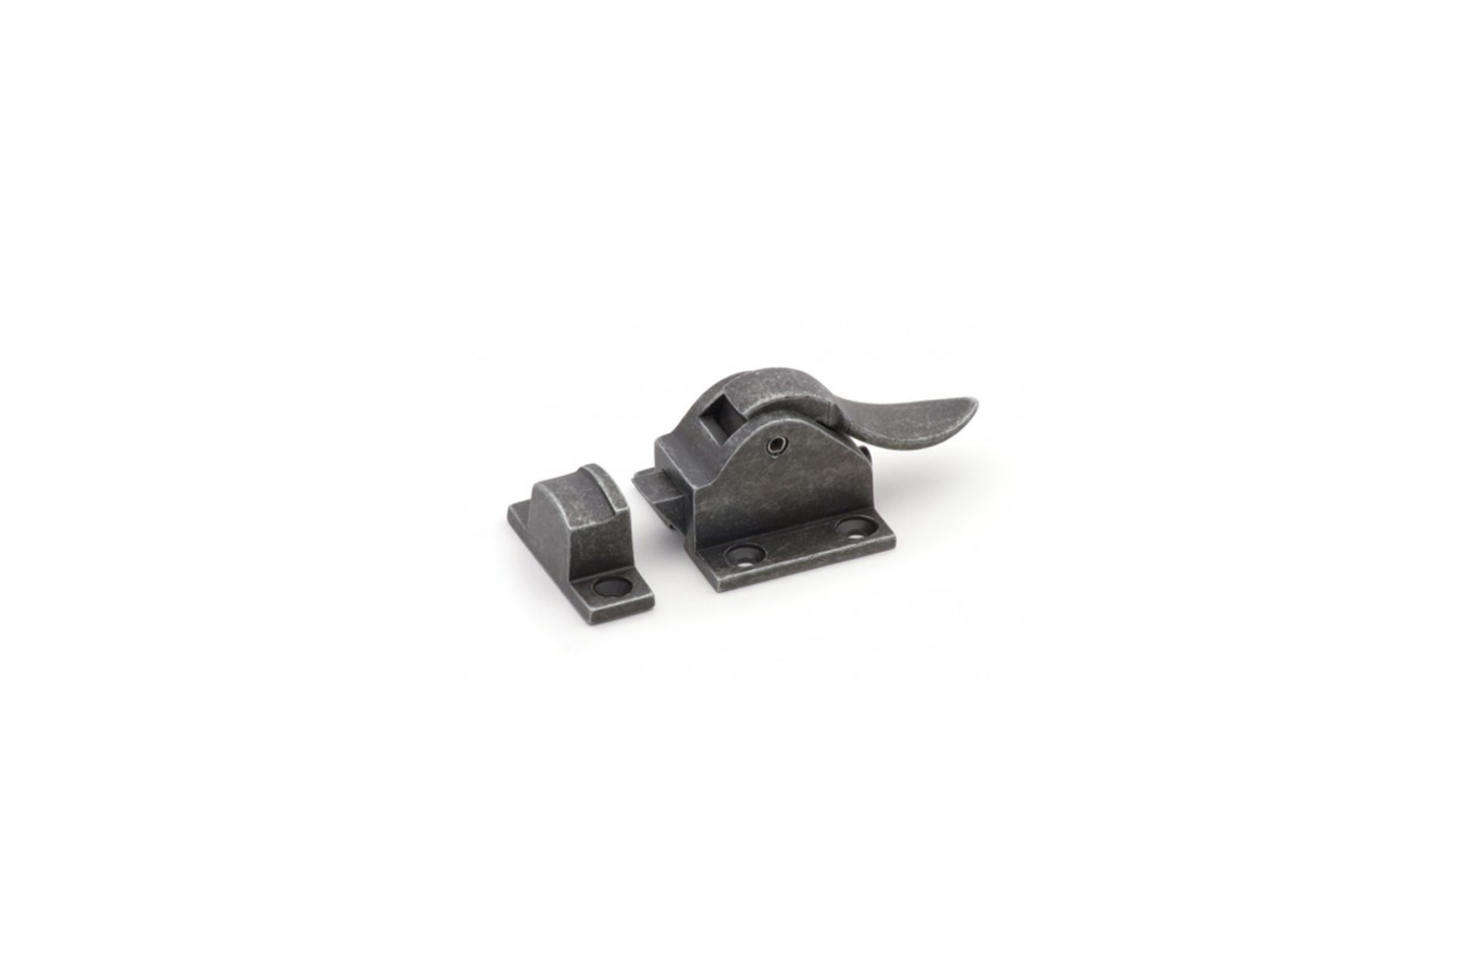 The Cliffside Industries Icebox-Style Cabinet Latch comes in iron (IBCL-IR) , shown, and other finishes for $.99 at Cliffside Industries.